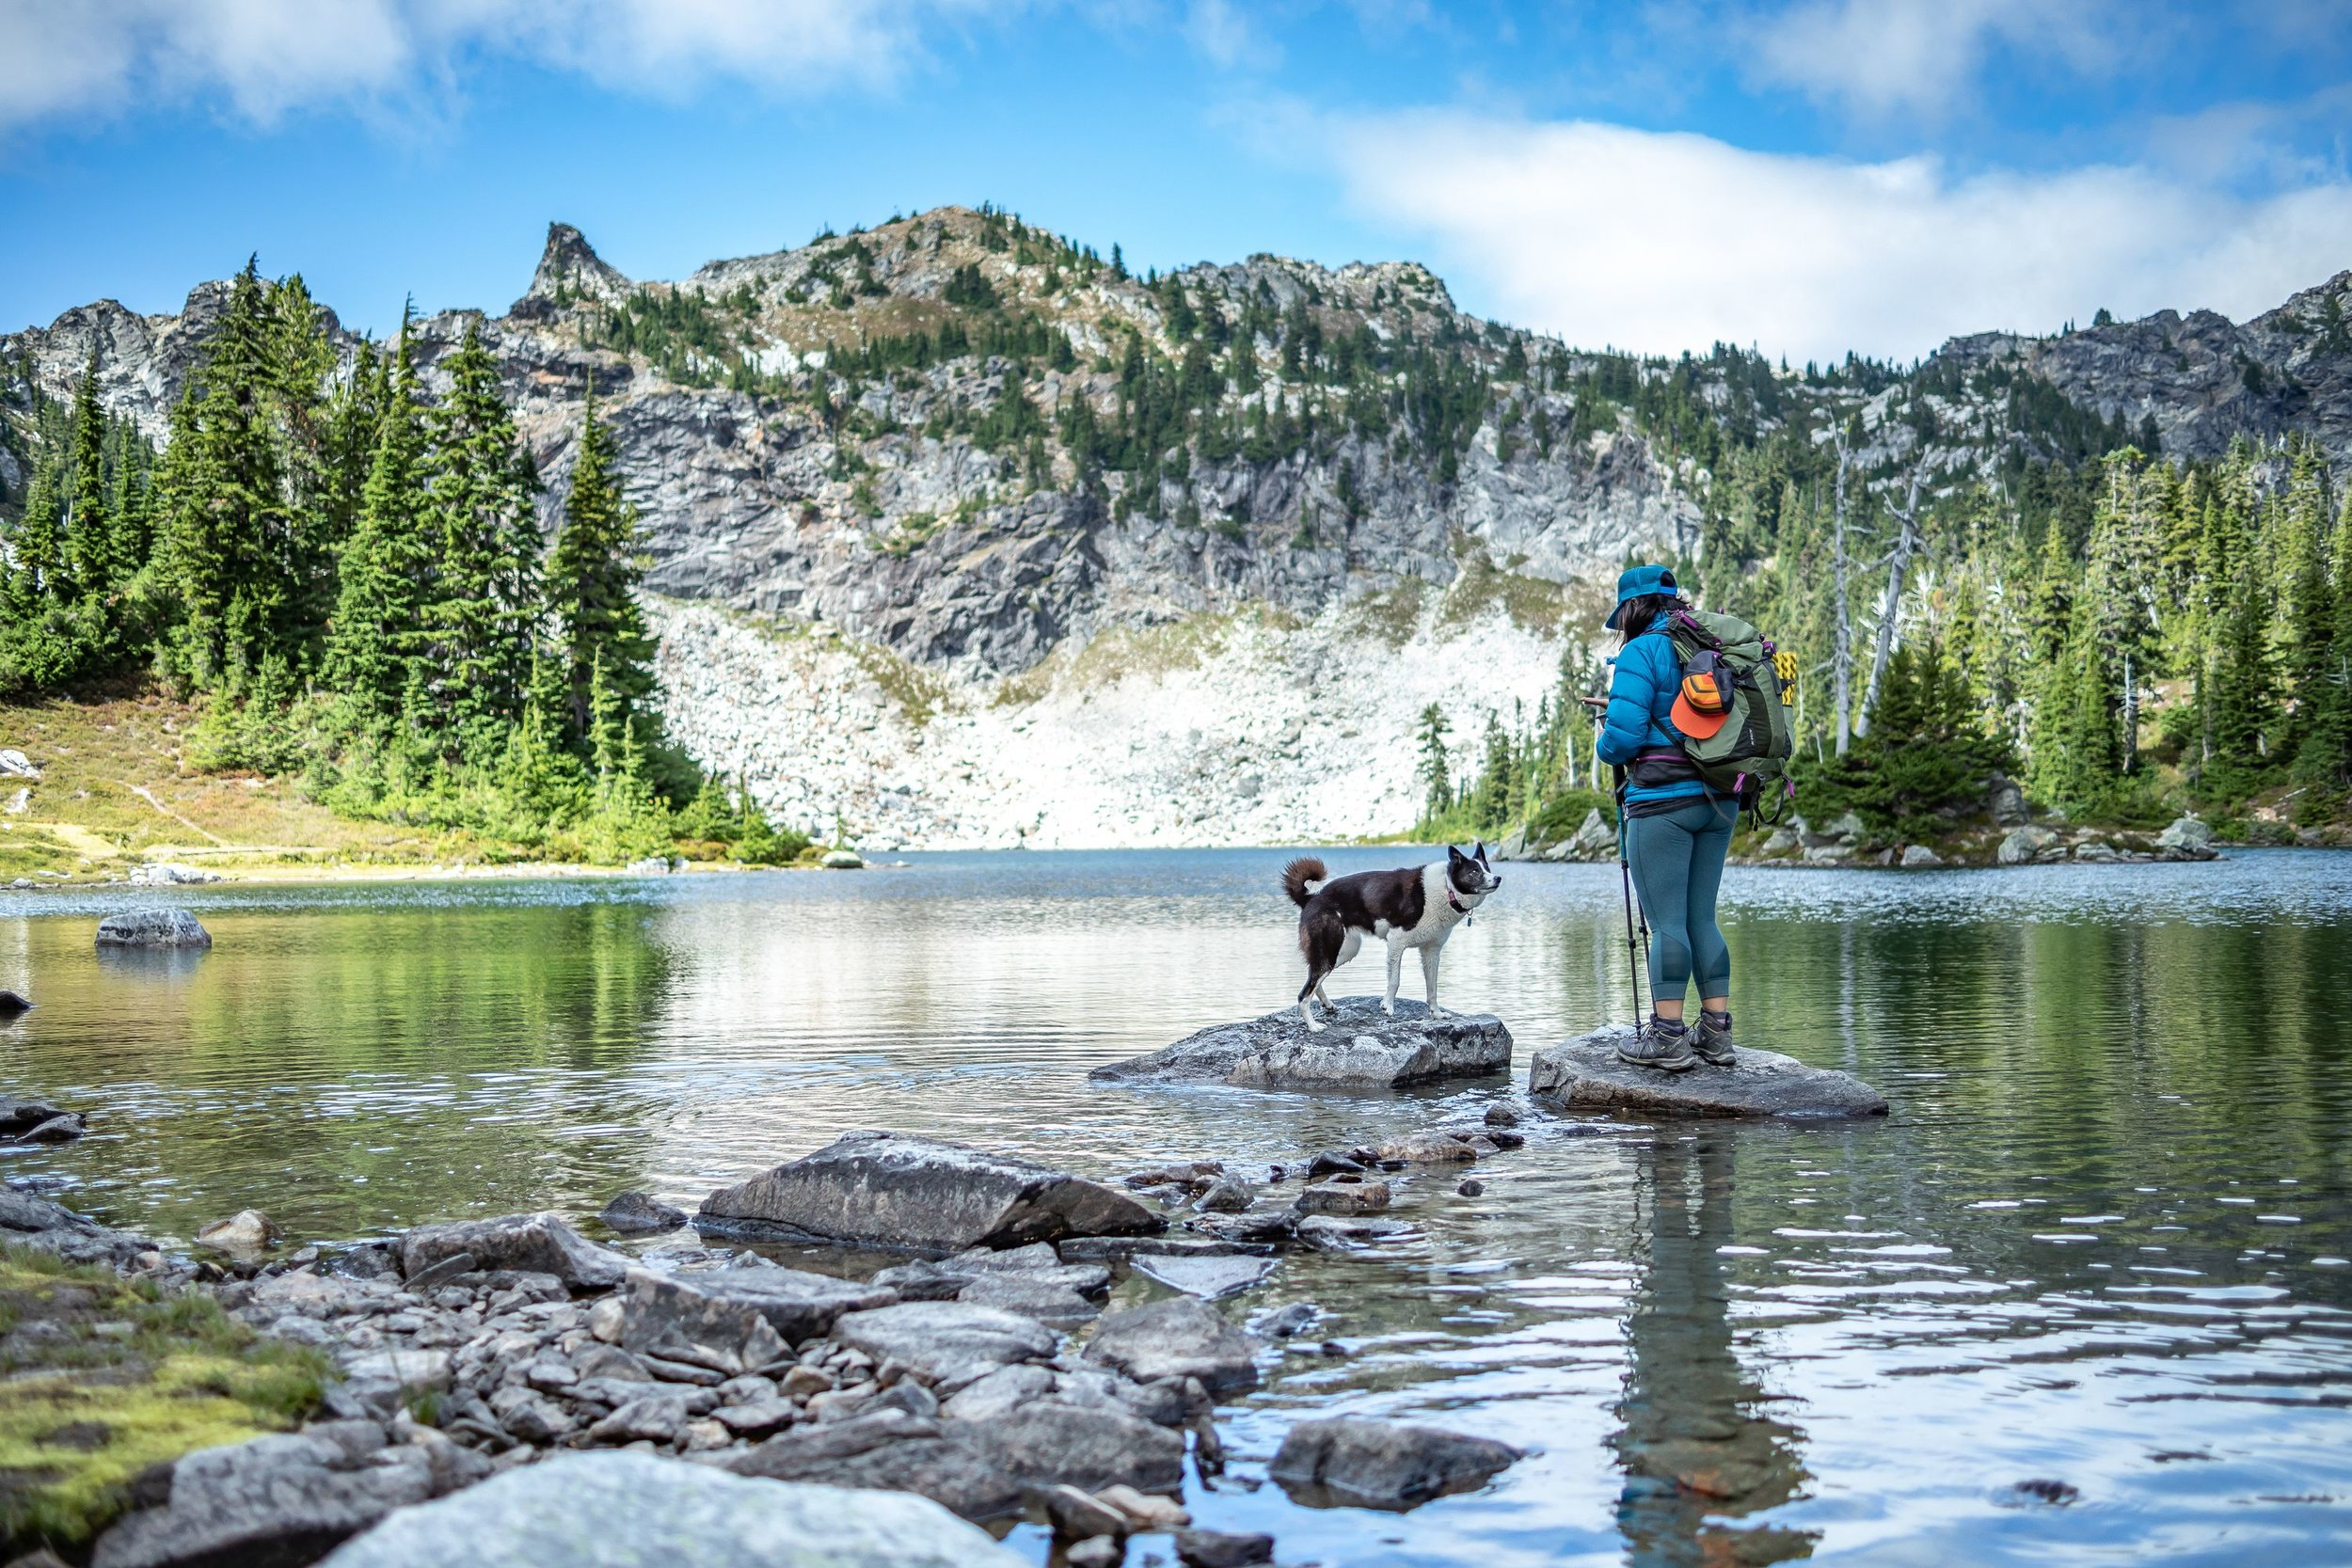 Once, and for all: Fund LWCF